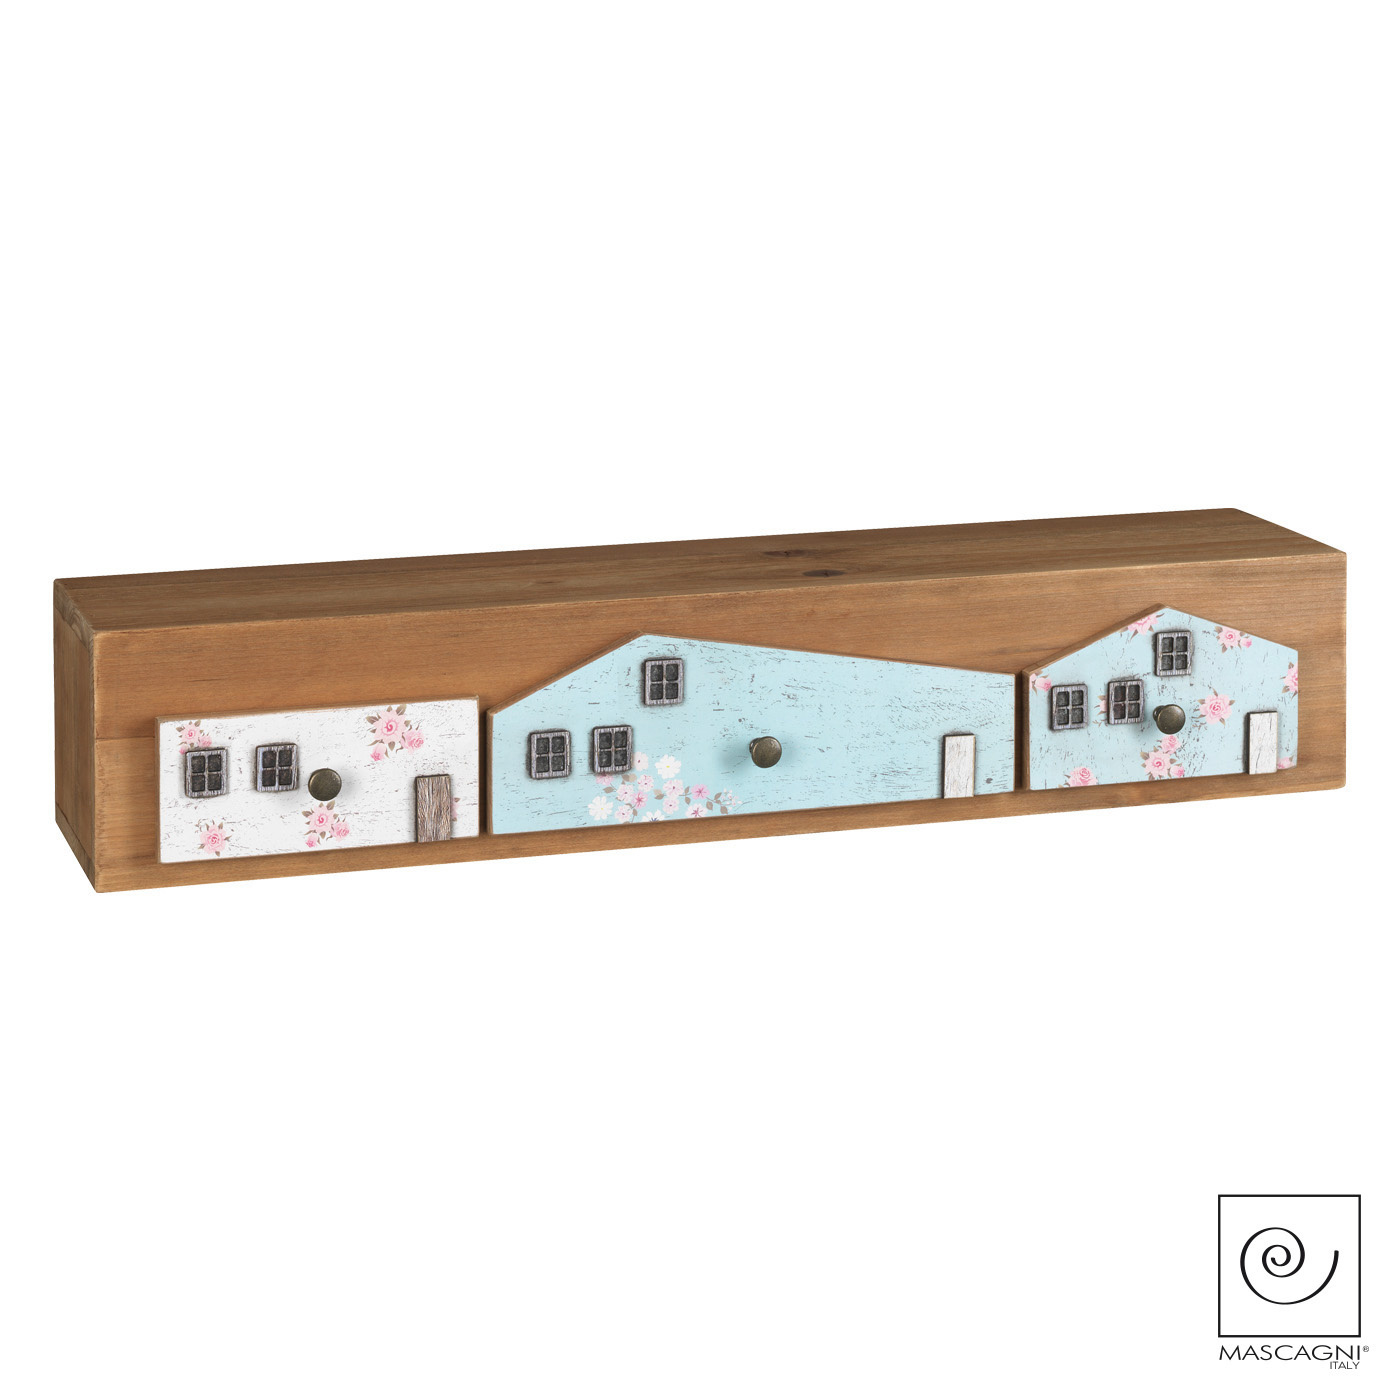 Art Mascagni A974 SHELF WITH 3 DRAWERS